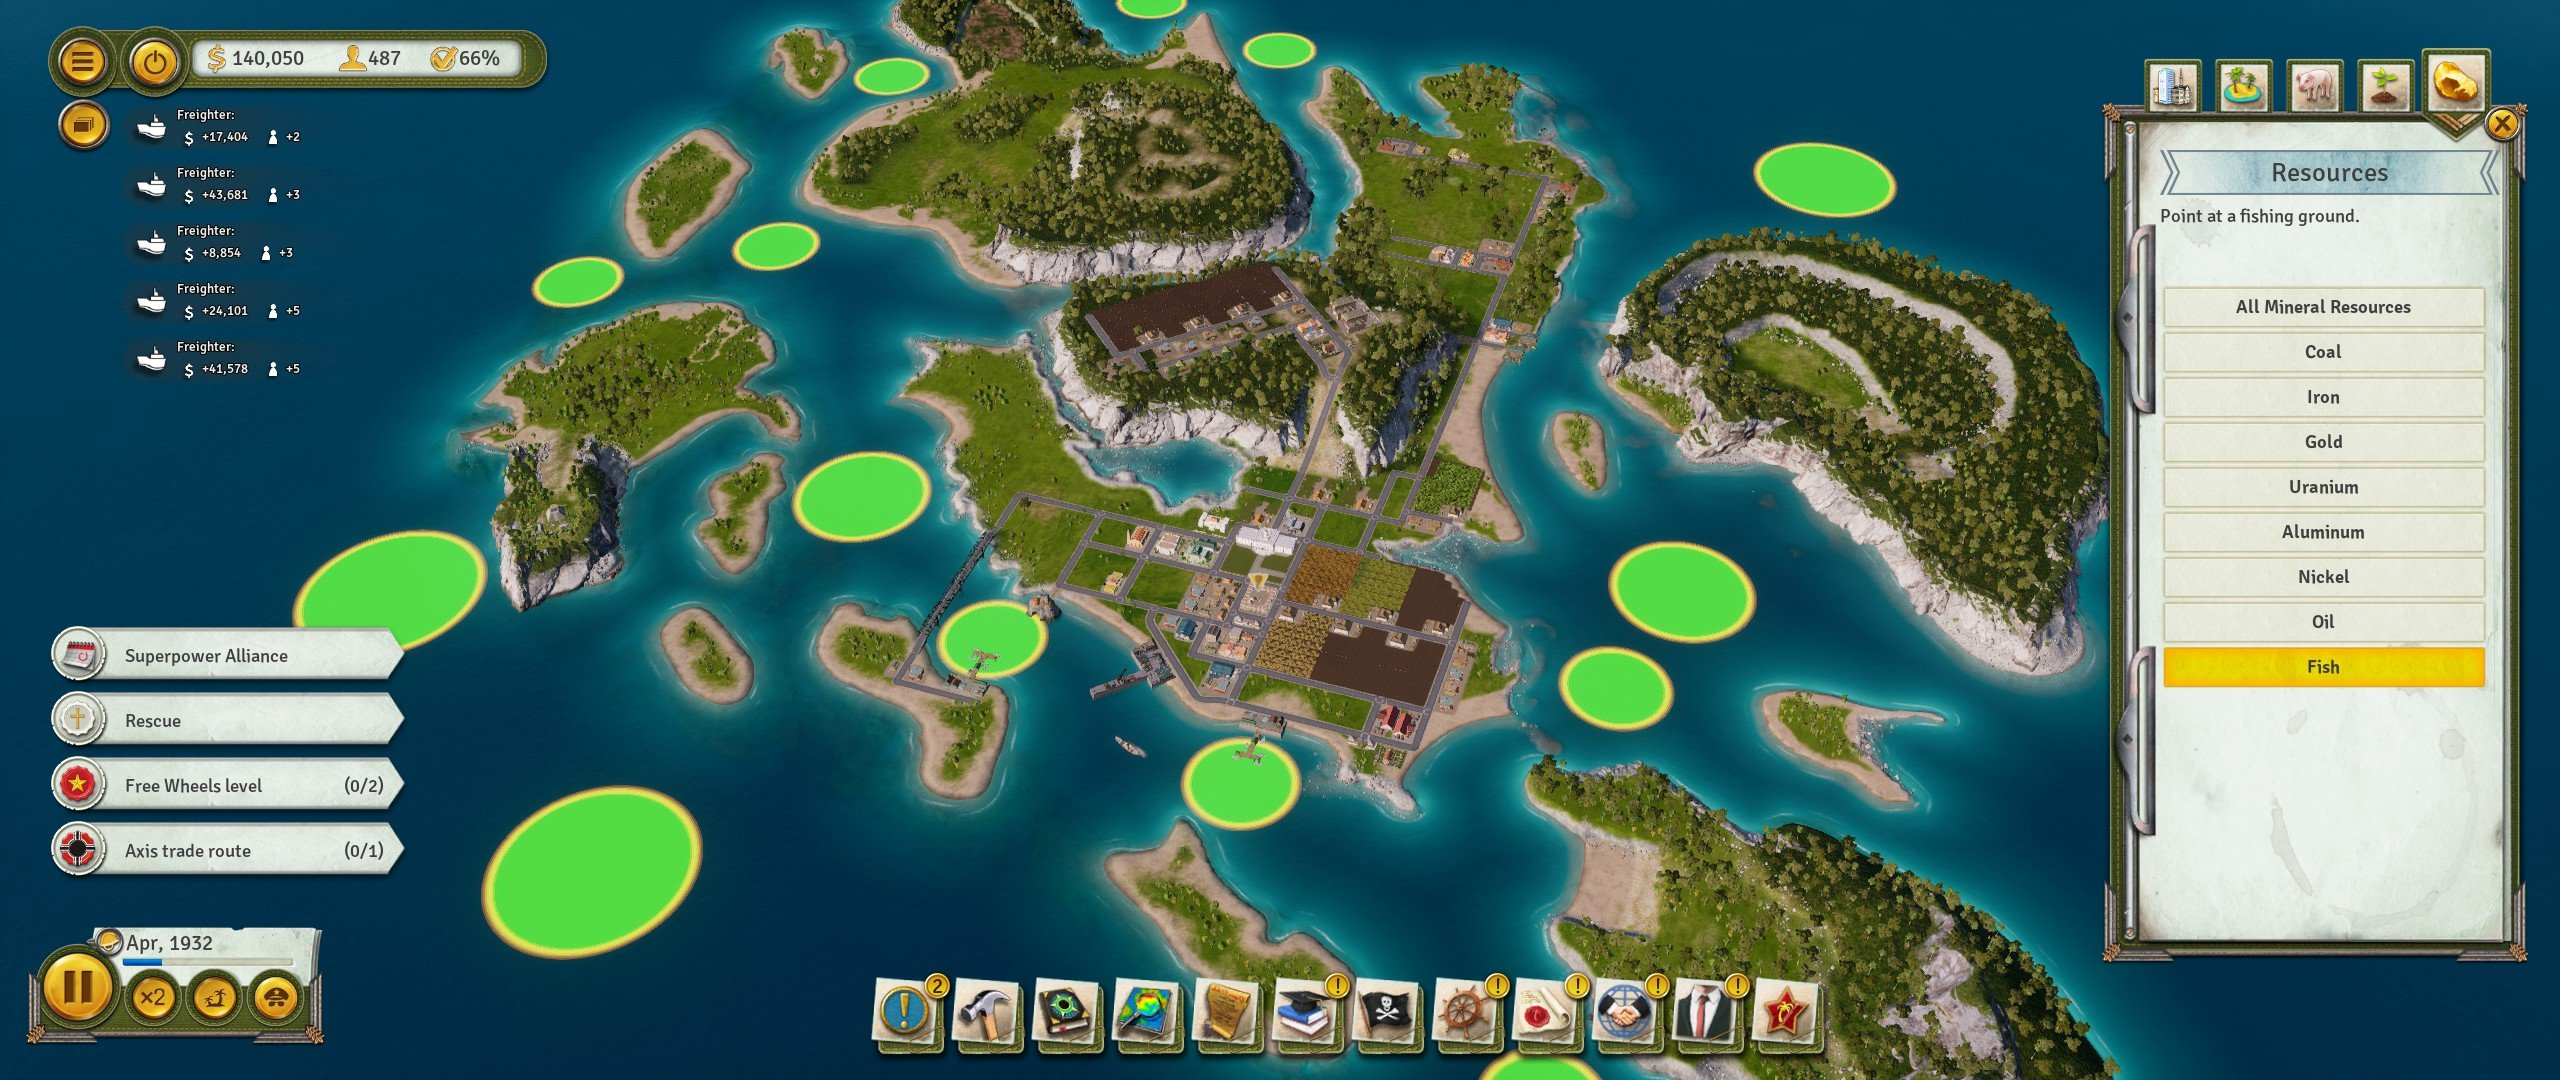 Tropico 6 review Shacknews screenshot 04